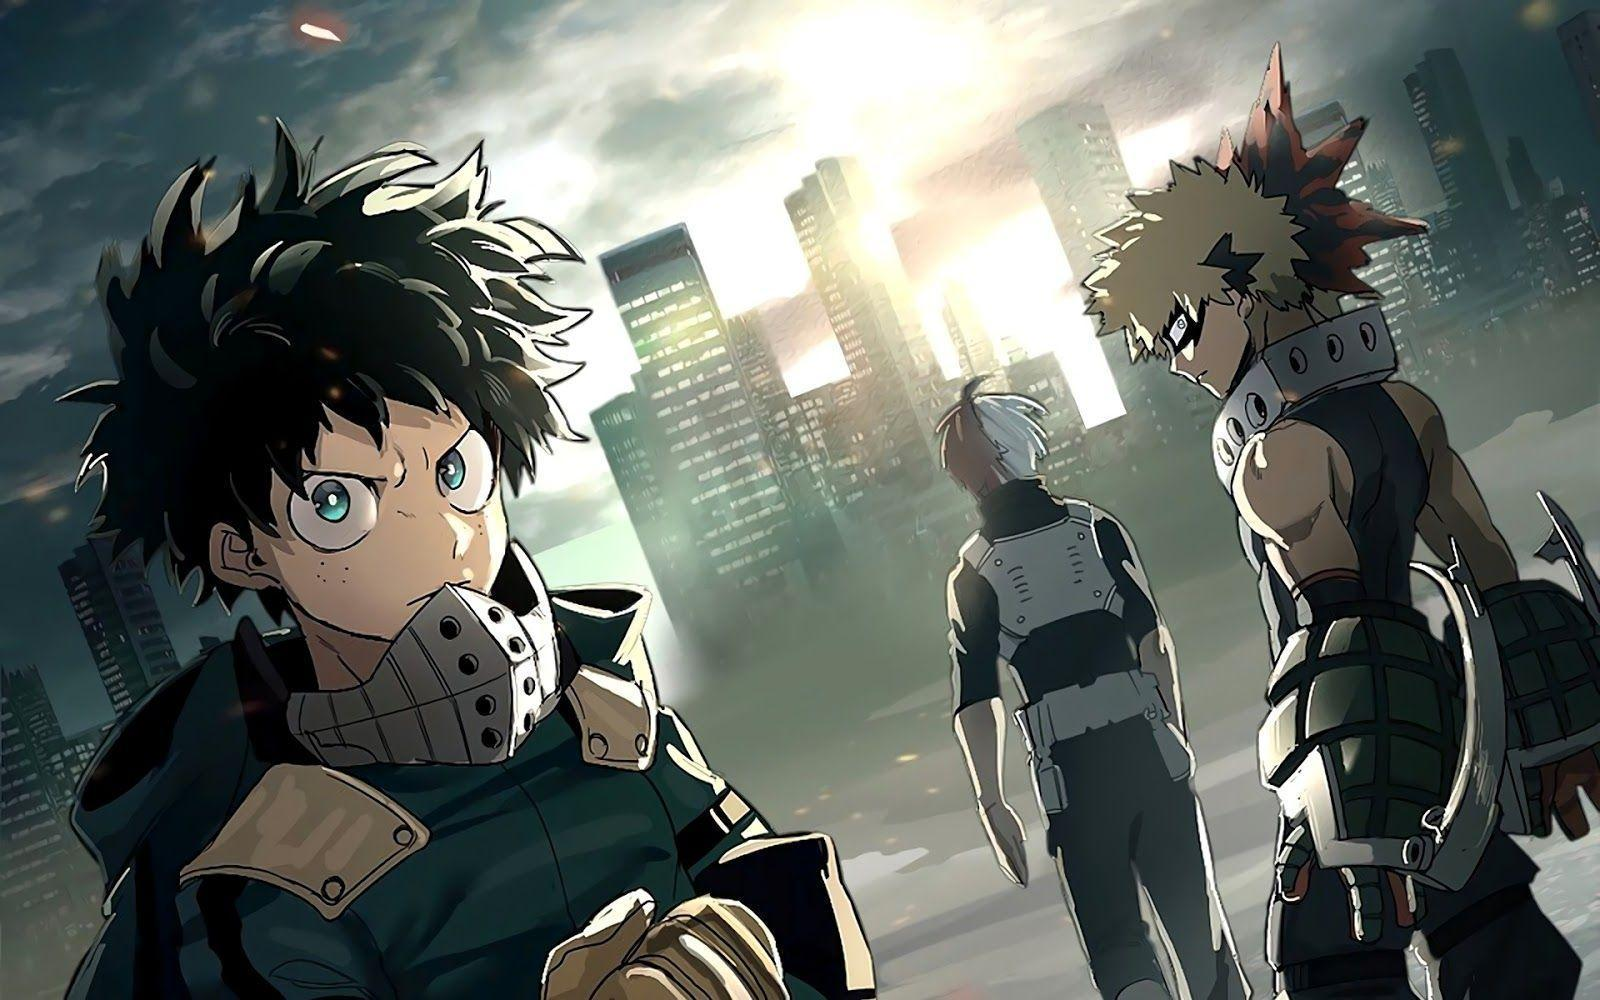 boku no hero academia wallpaper images (7) - HD Wallpapers Buzz